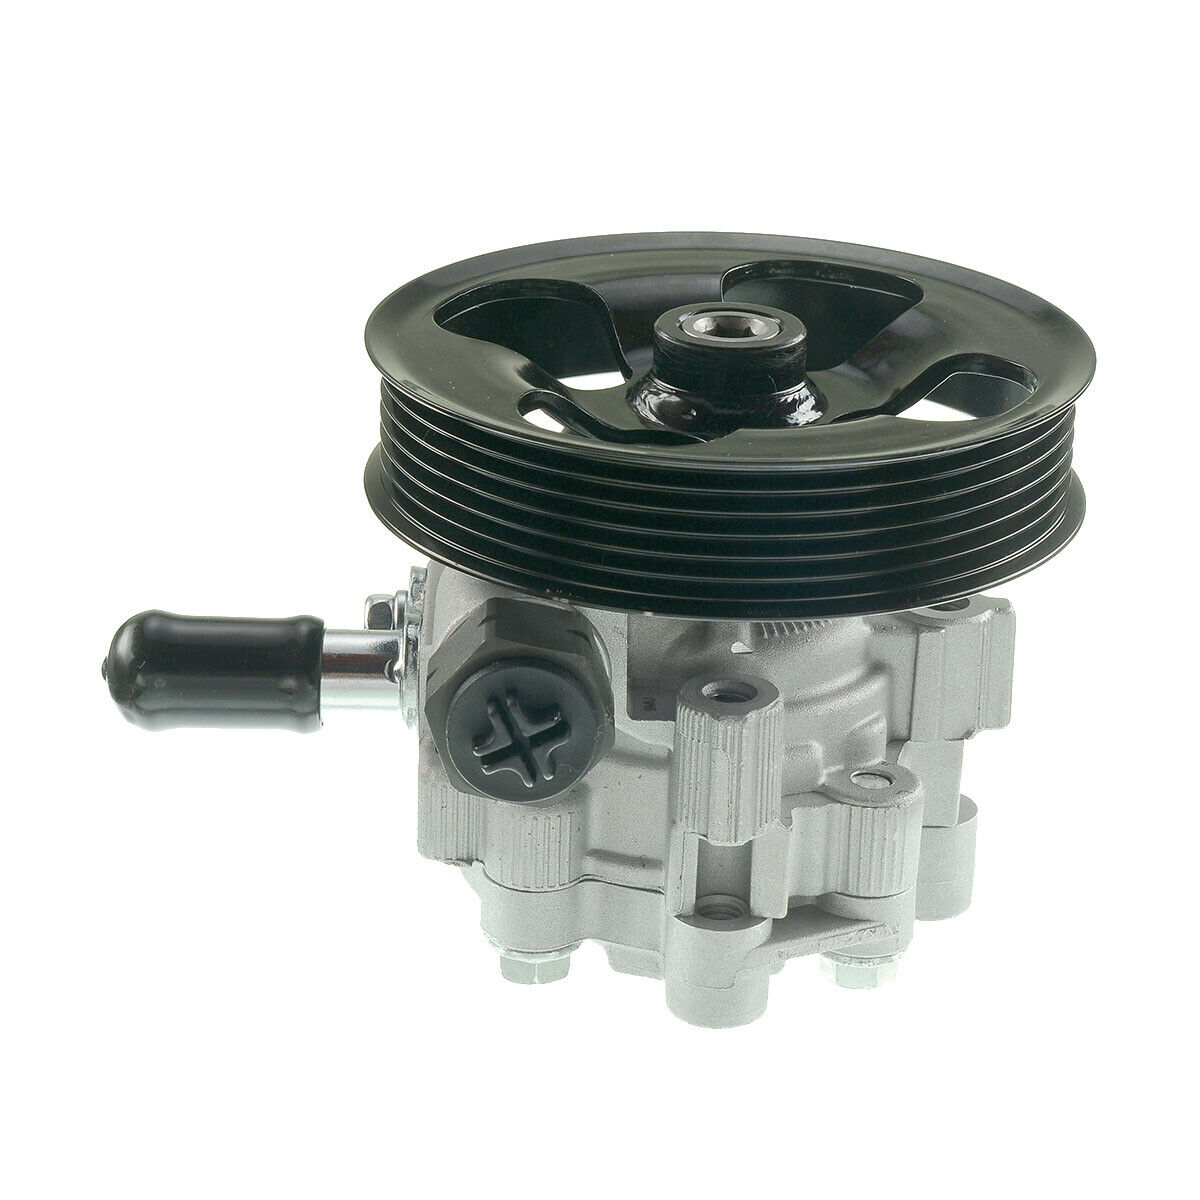 A-Premium Power Steering Pump with Pulley Compatible with Land Rover LR3 2005-2007 V6 4.0L